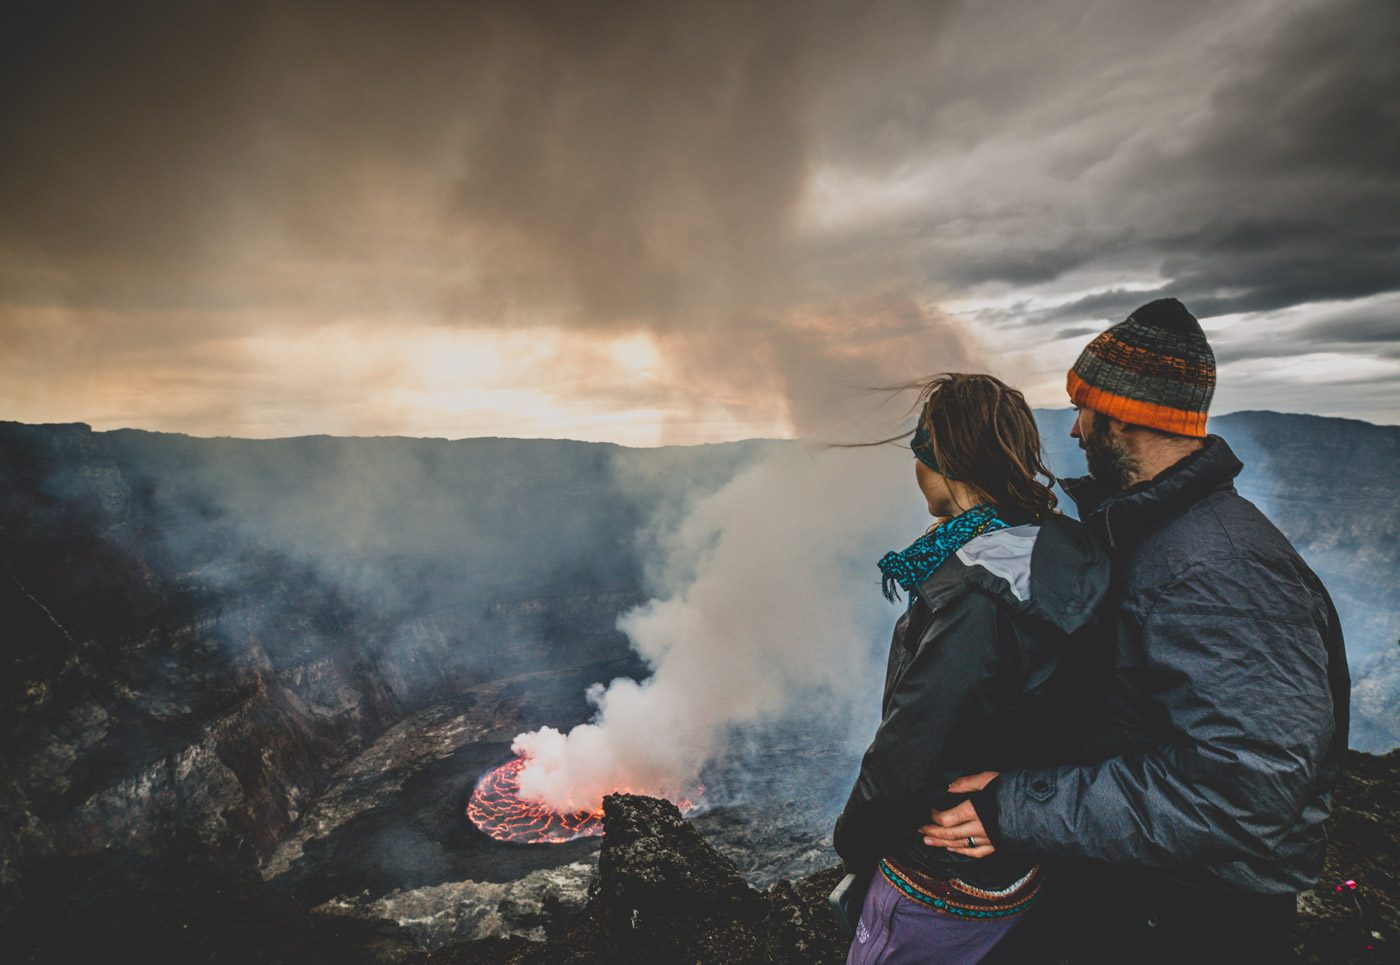 Watching the Nyiragongo Volcanos